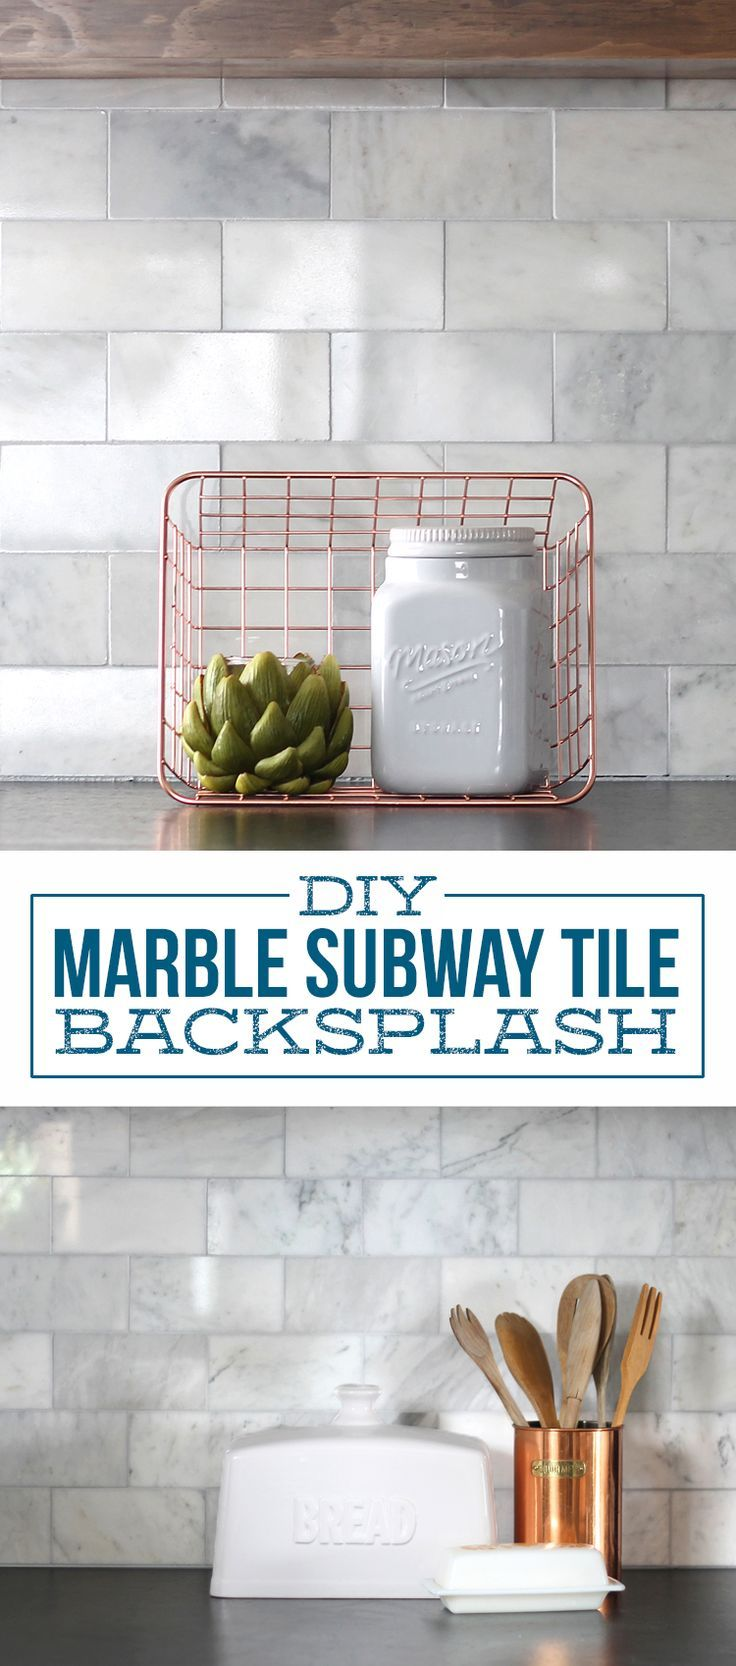 Best 25 grout colors ideas on pinterest tile grout colors grey tips tricks and what not to do when you install your own kitchen backsplash specific tips for working with marble tile the best grout color to use with nvjuhfo Image collections